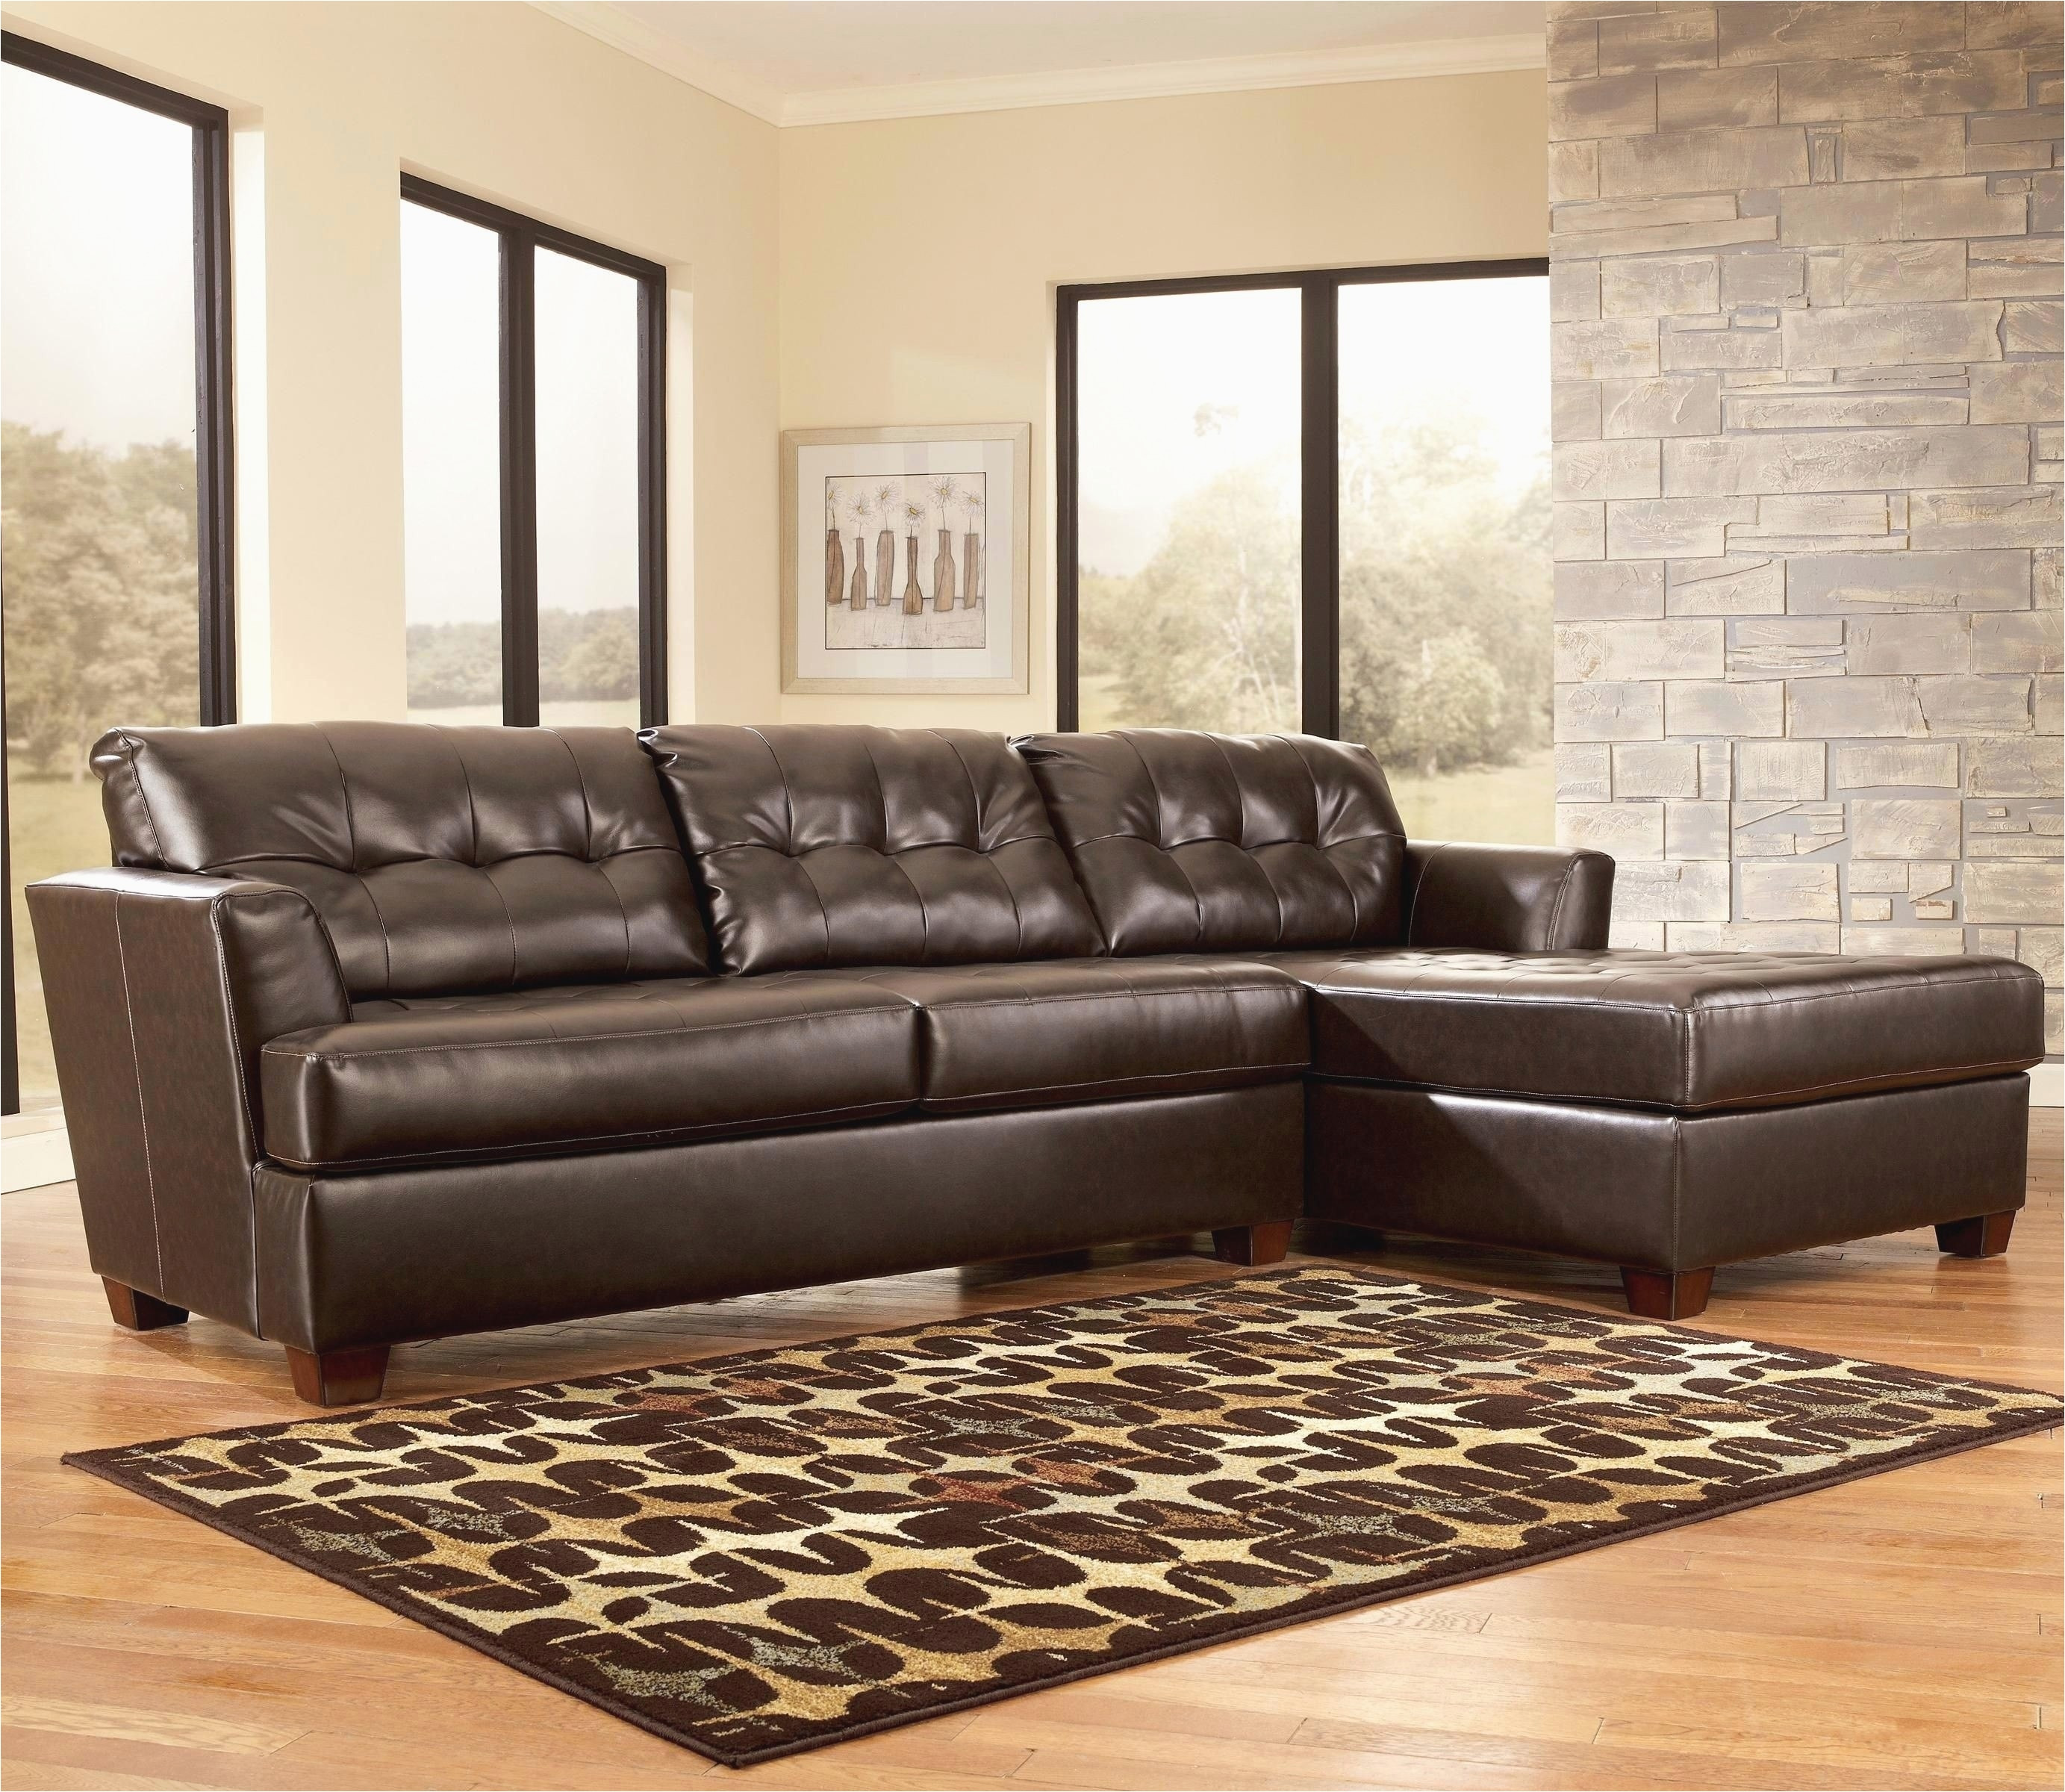 zep hardwood and laminate floor cleaner reviews of furniture stores in mesa 34 best of ashley home furniture pics home for furniture stores in mesa 34 best of ashley home furniture pics home furniture ideas